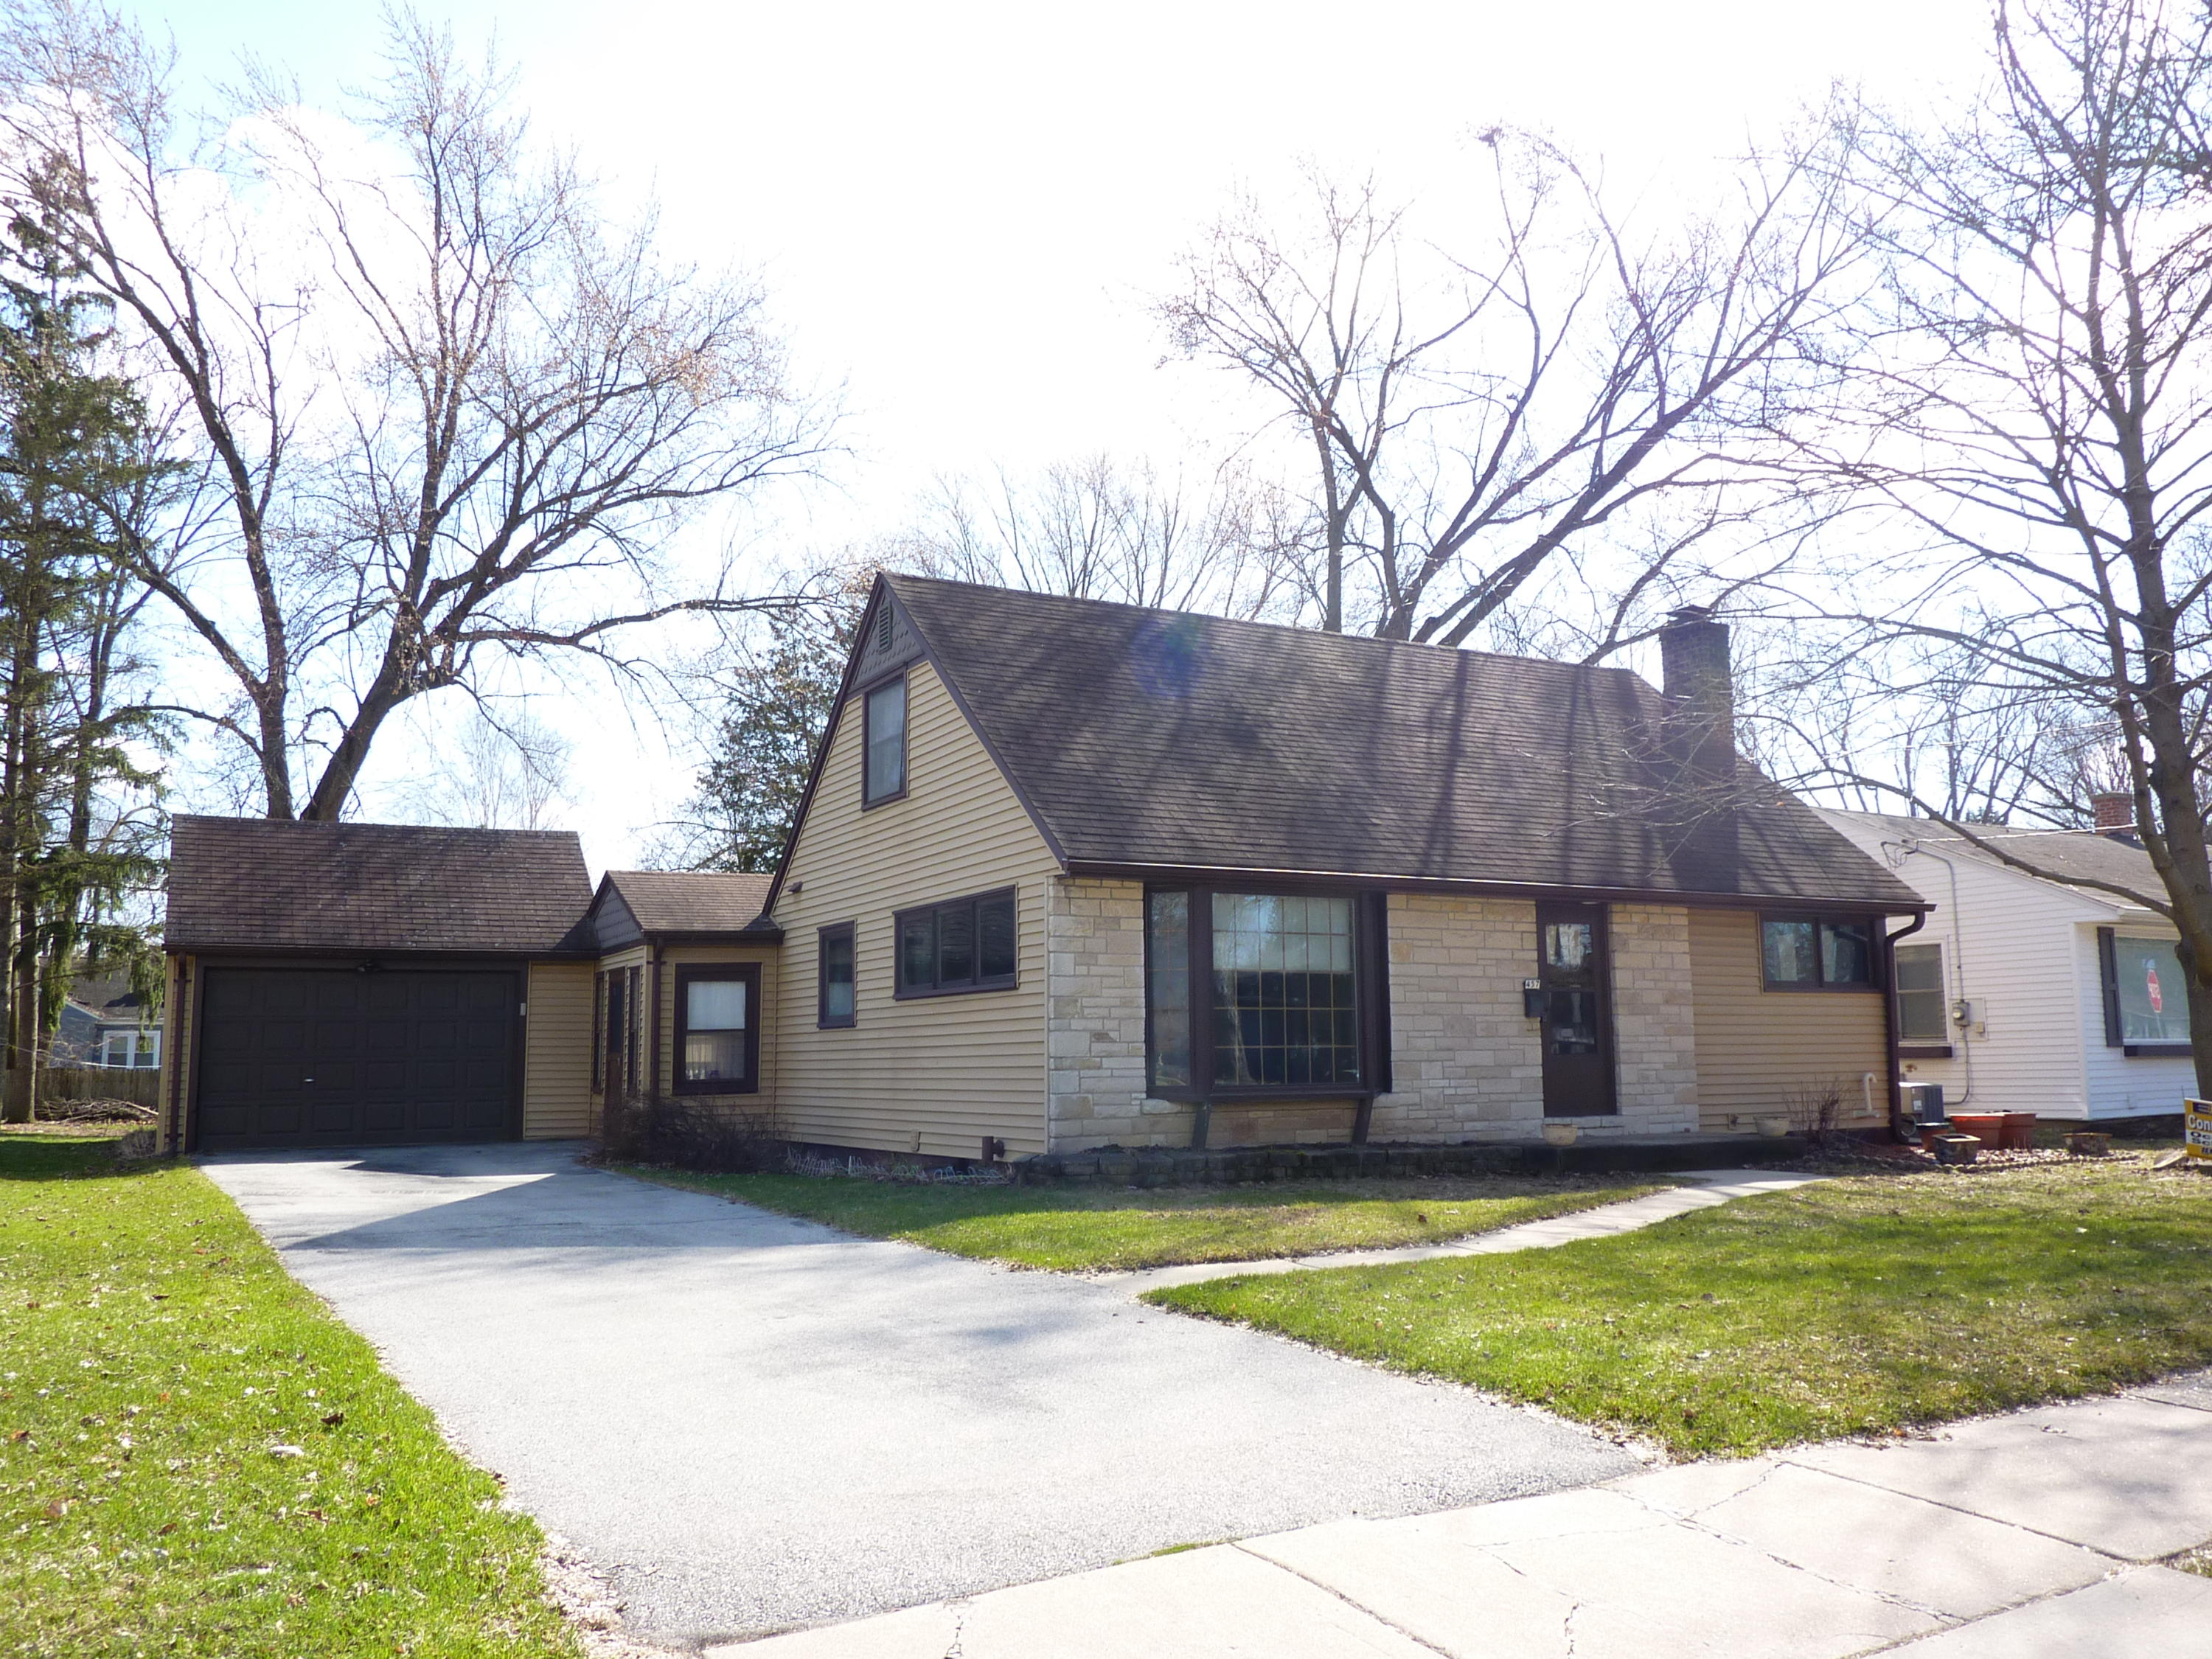 457 5th St, Oconomowoc, Wisconsin 53066, 4 Bedrooms Bedrooms, 6 Rooms Rooms,1 BathroomBathrooms,Single-Family,For Sale,5th St,1683557